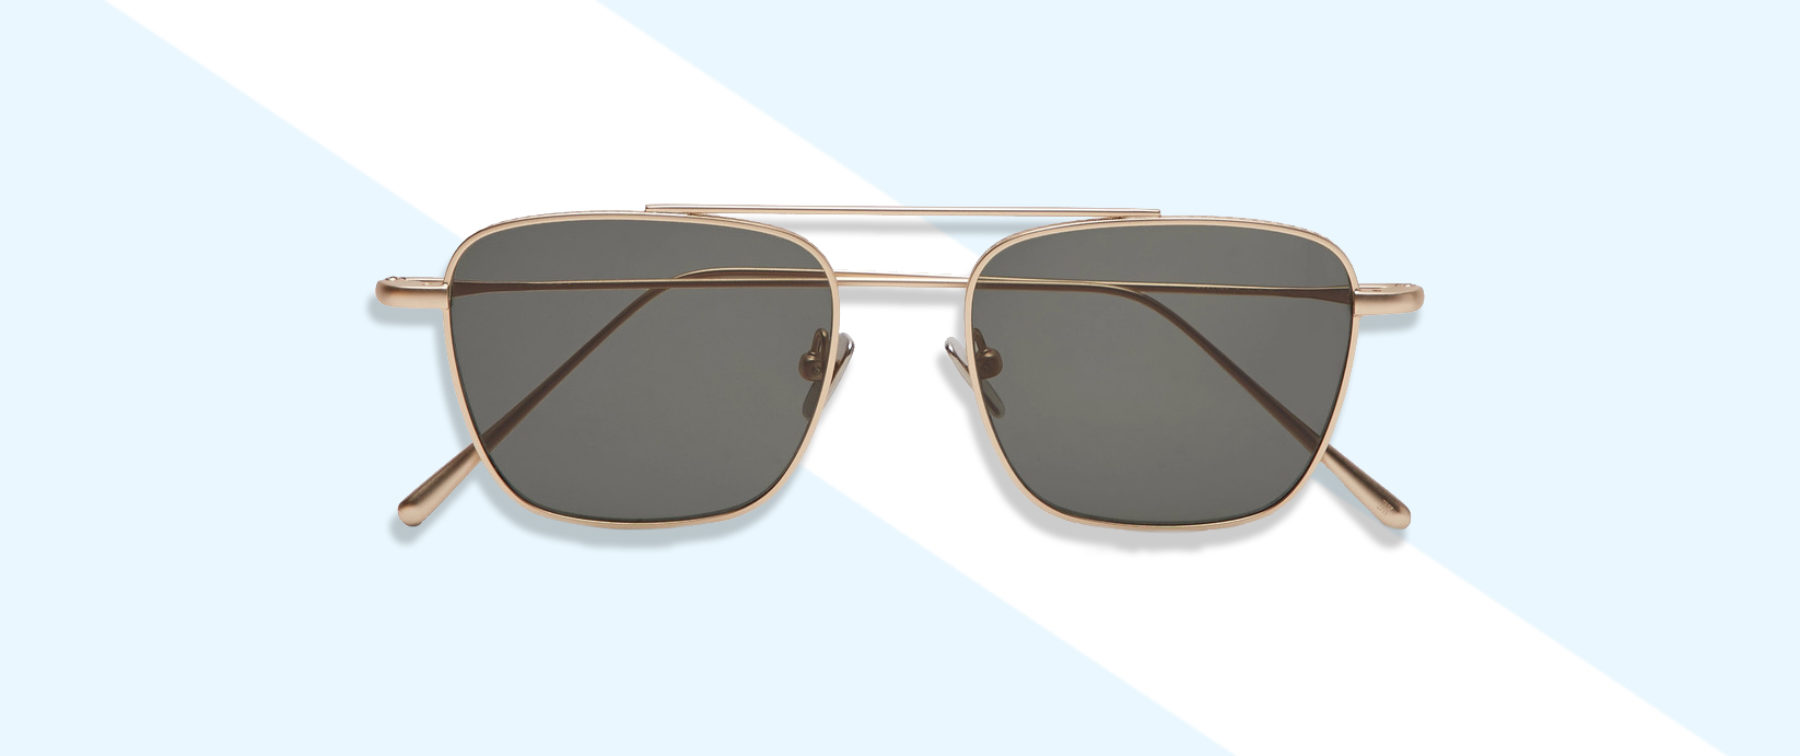 cubitts collier sunglasses